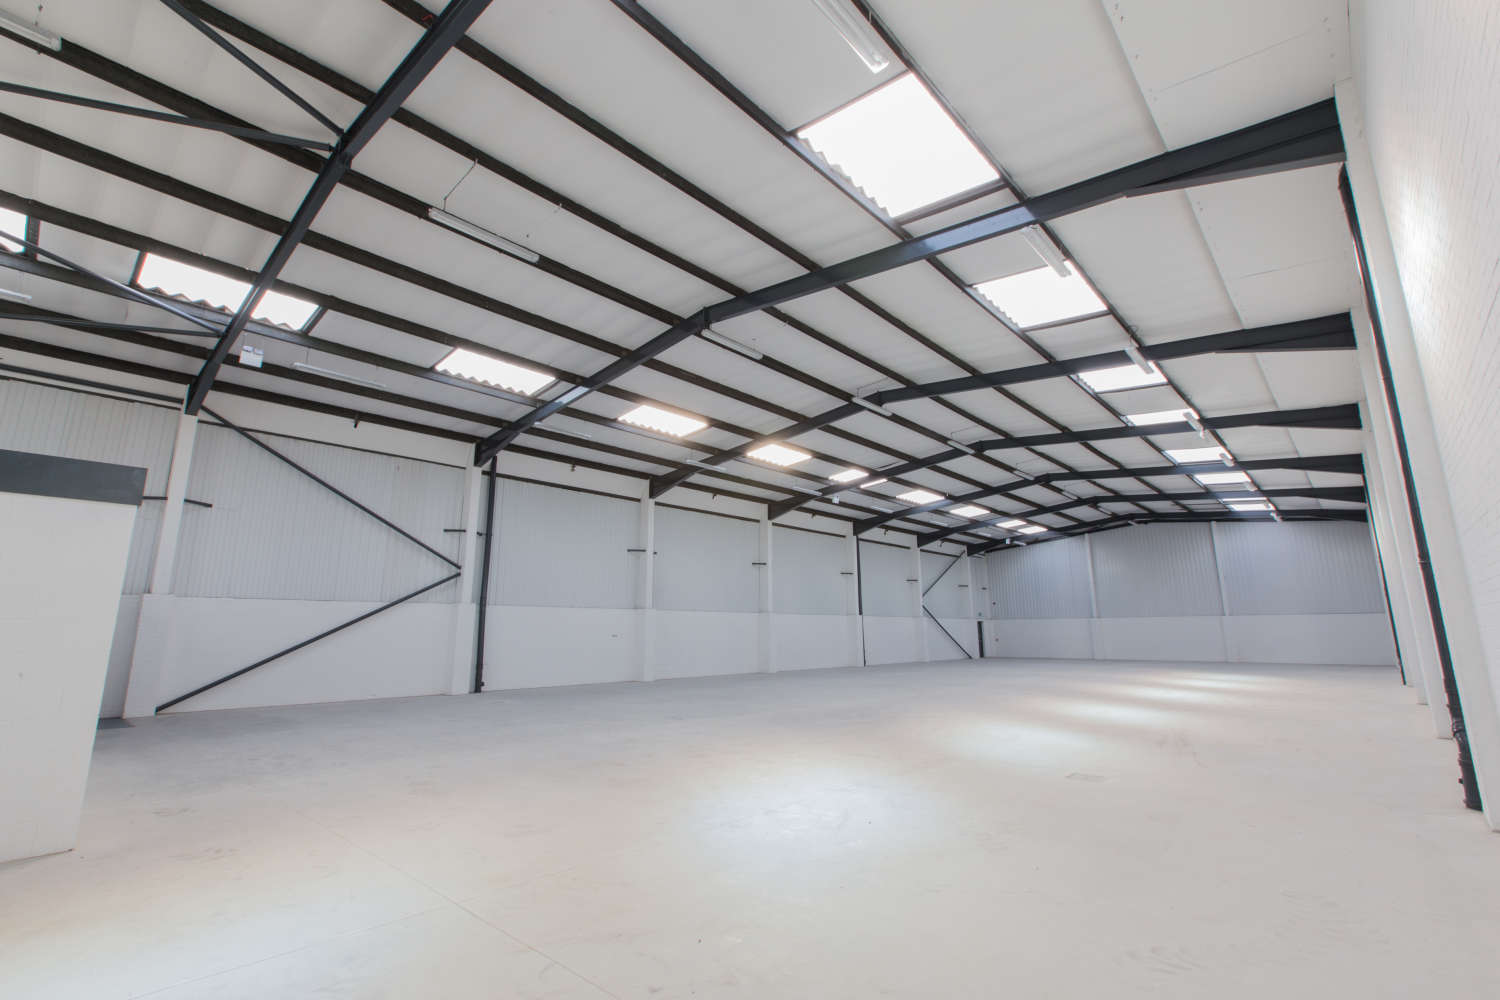 Industrial and logistics Leeds, LS10 1AG - Unit 10 Orbital Industry Park - 5000